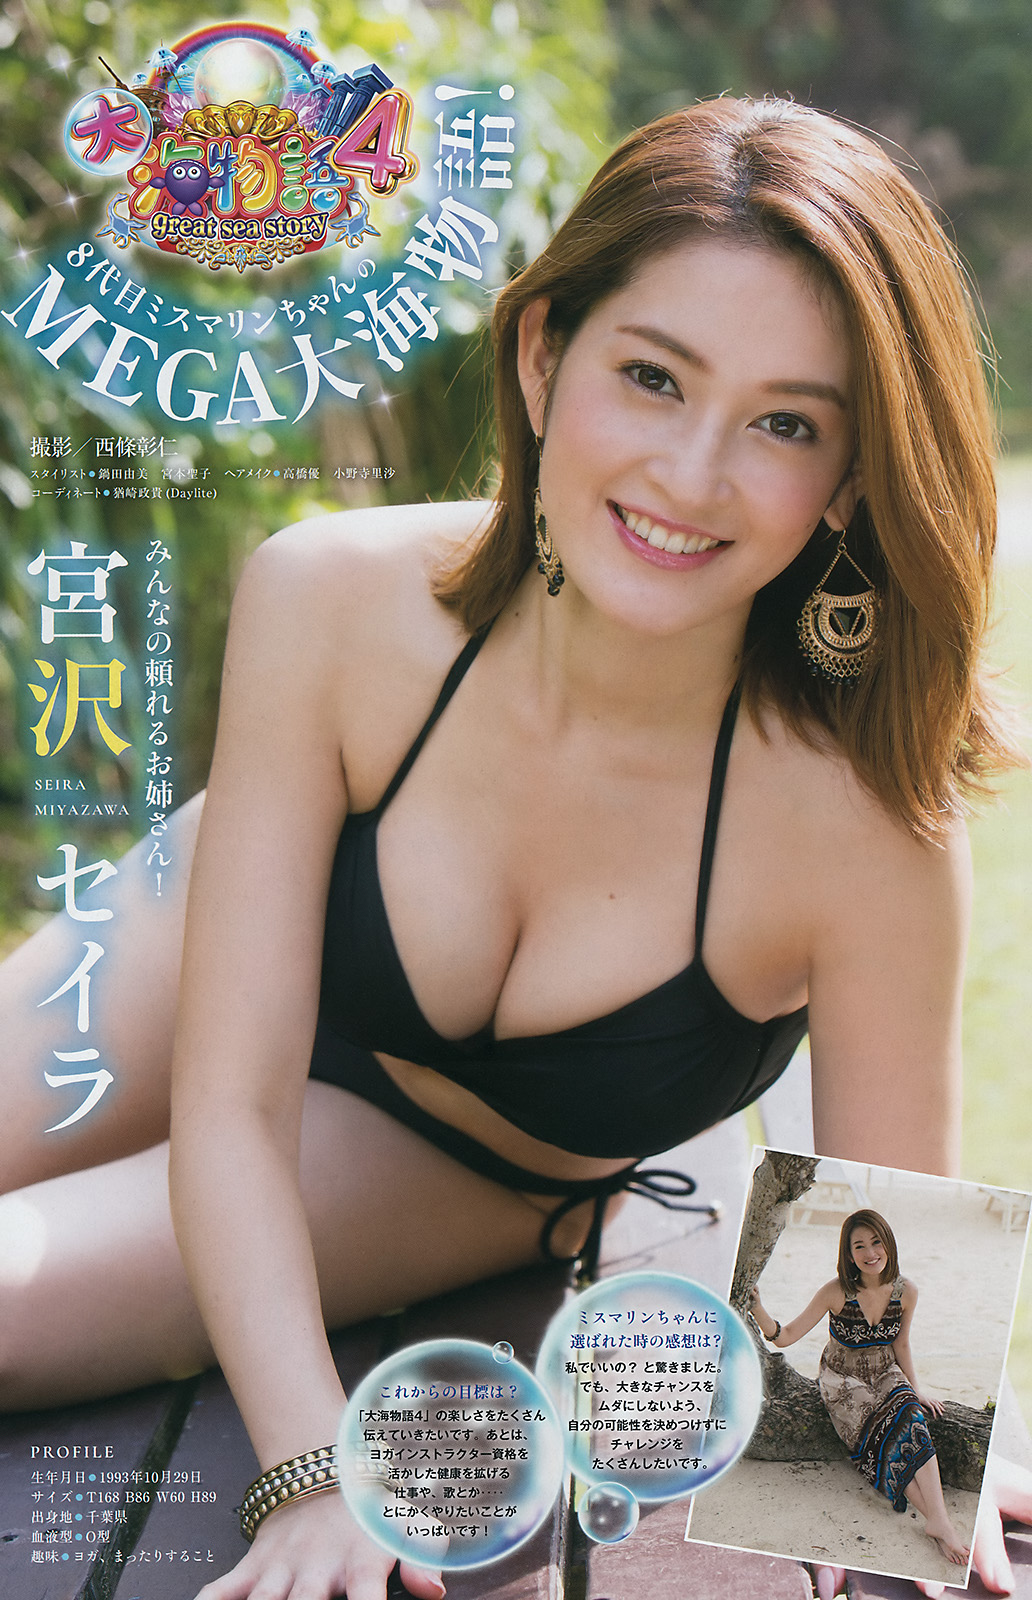 Miss Marine Special, Young Magazine 2018 No.01 (週刊ヤングマガジン 2018年01号)